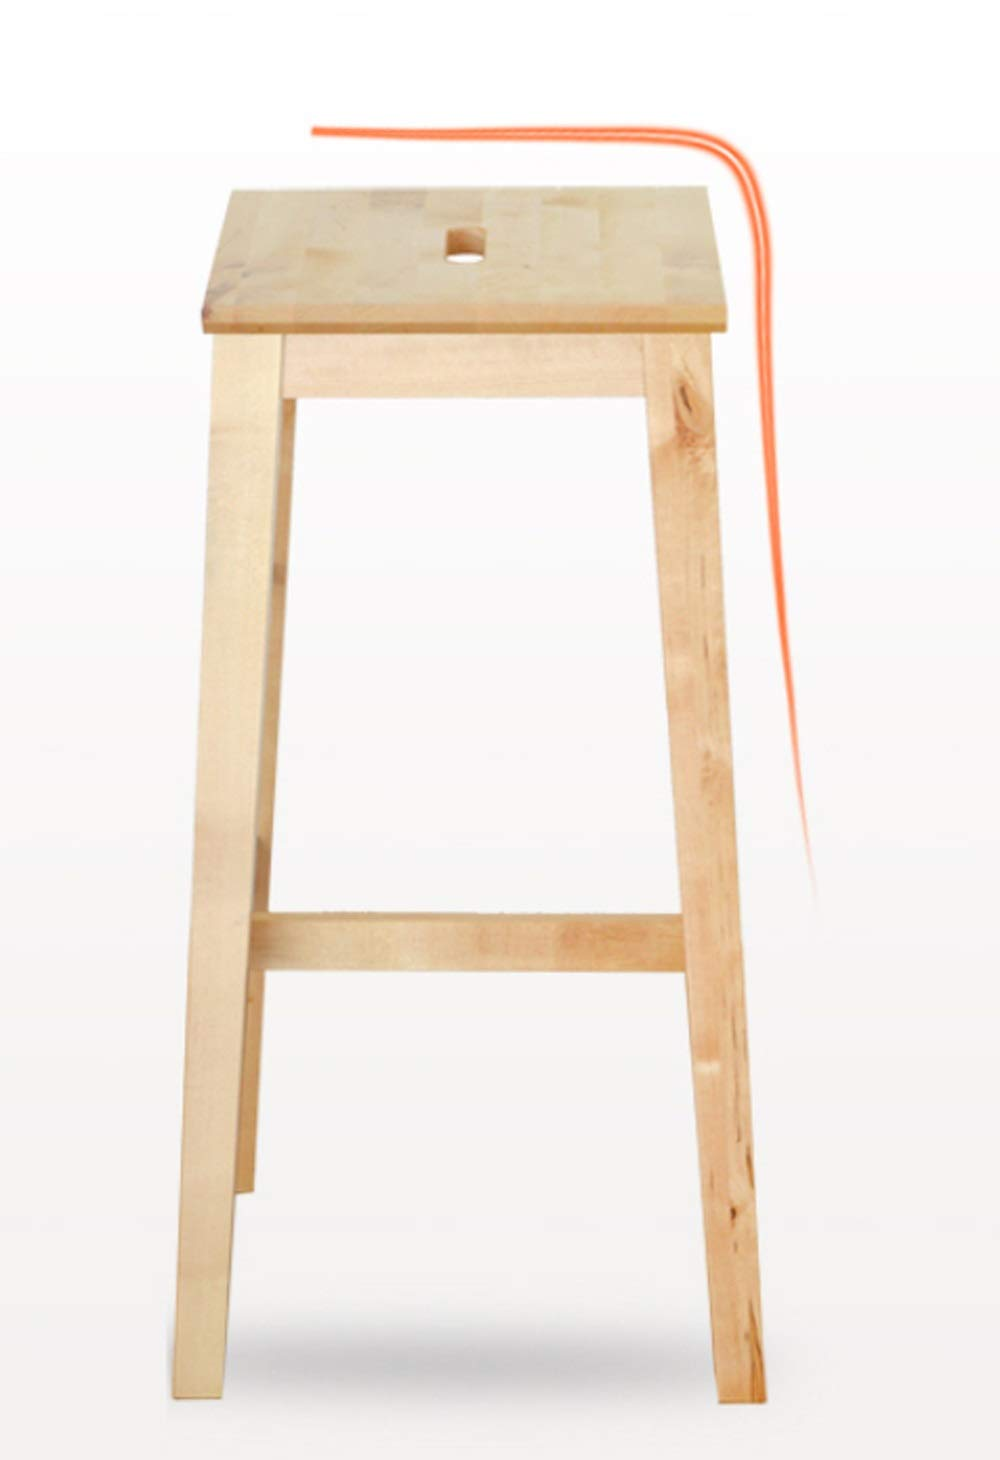 AO-stools Nordic Simple Birch bar Stool high Stool bar Chair 74x37x38cm by AO (Image #5)